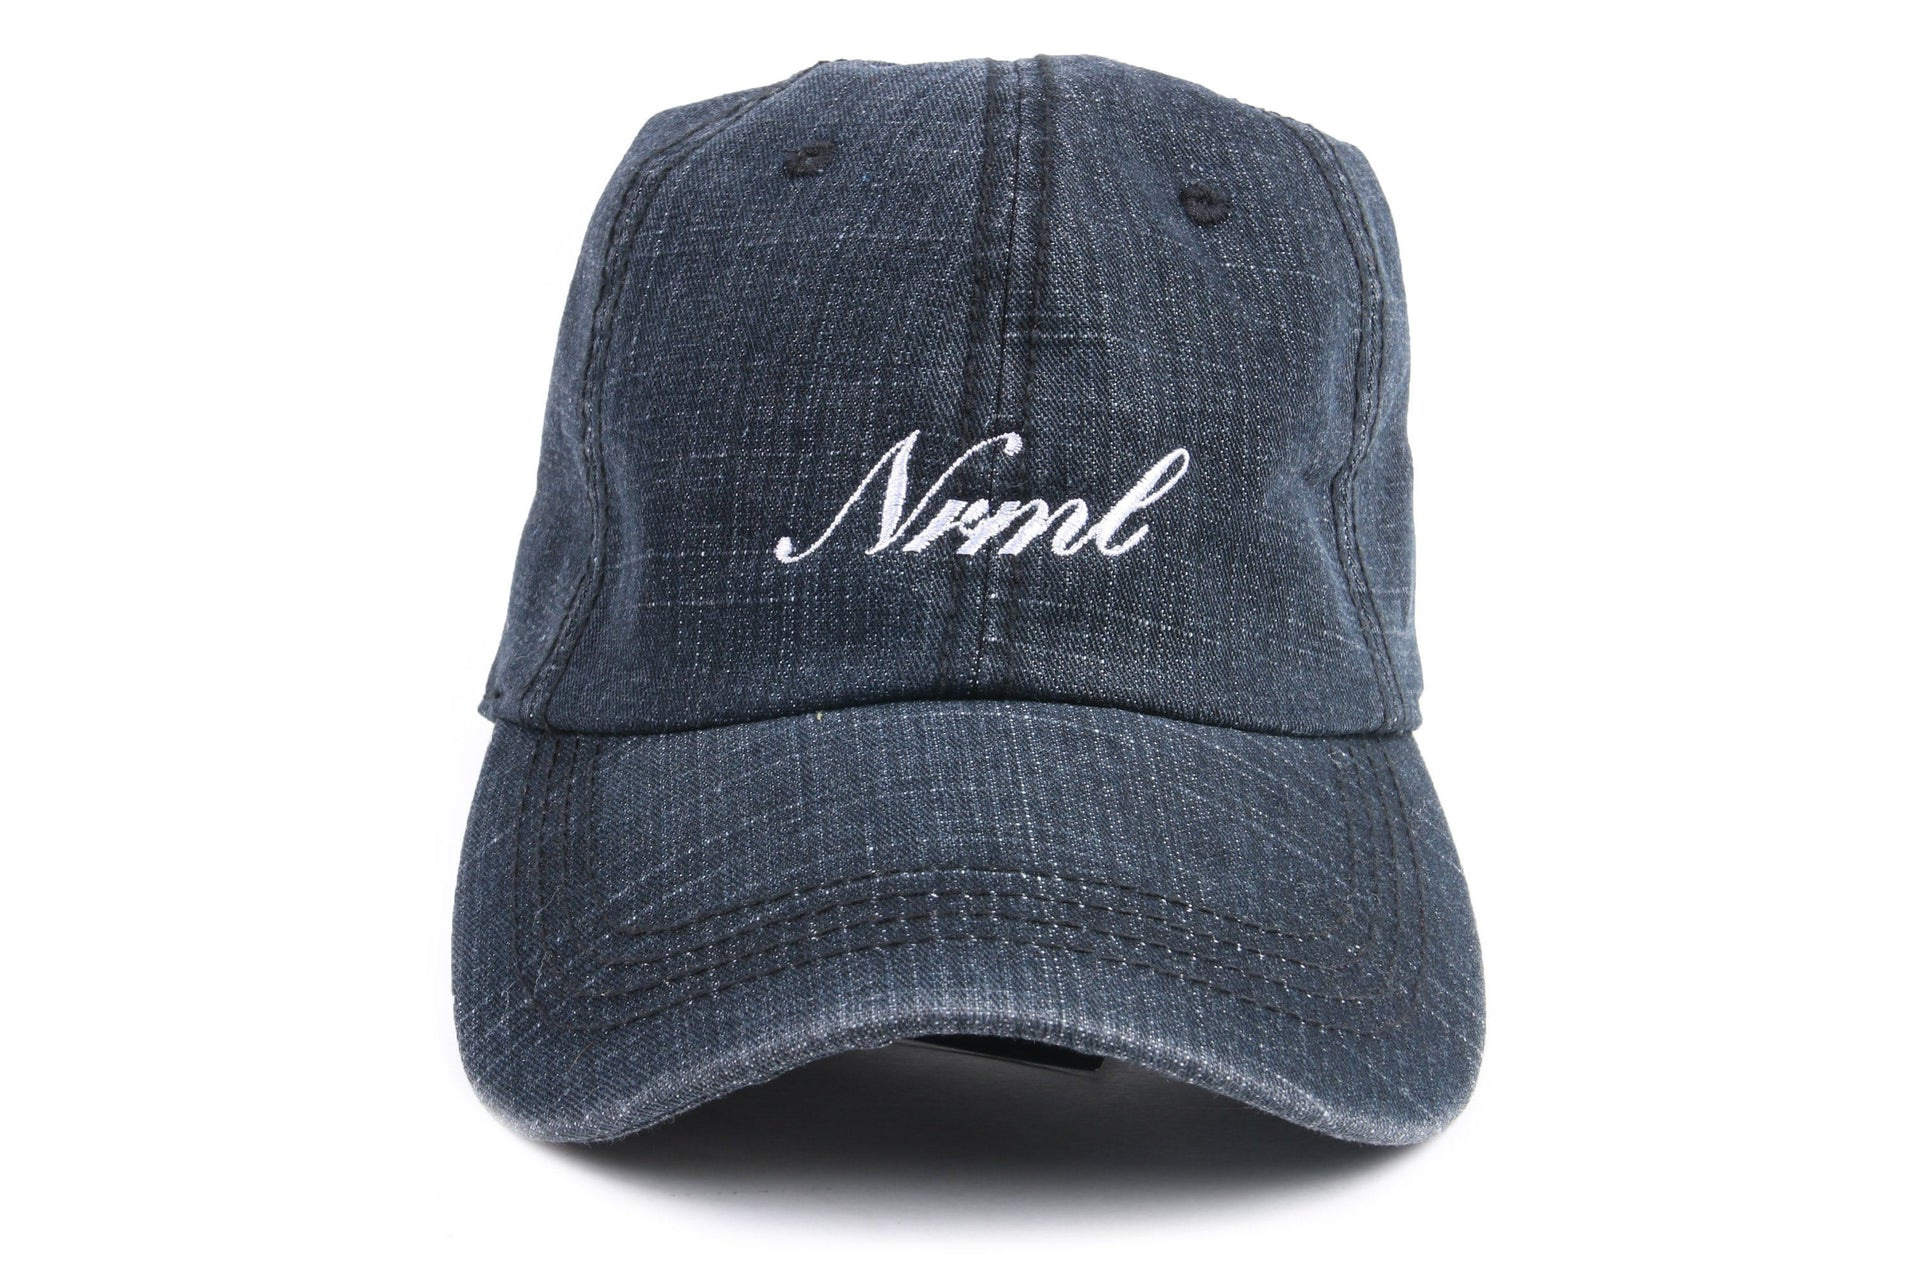 NRML SCRIPT ONE SIZE HATS NRML BLACK DENIM ONE SIZE